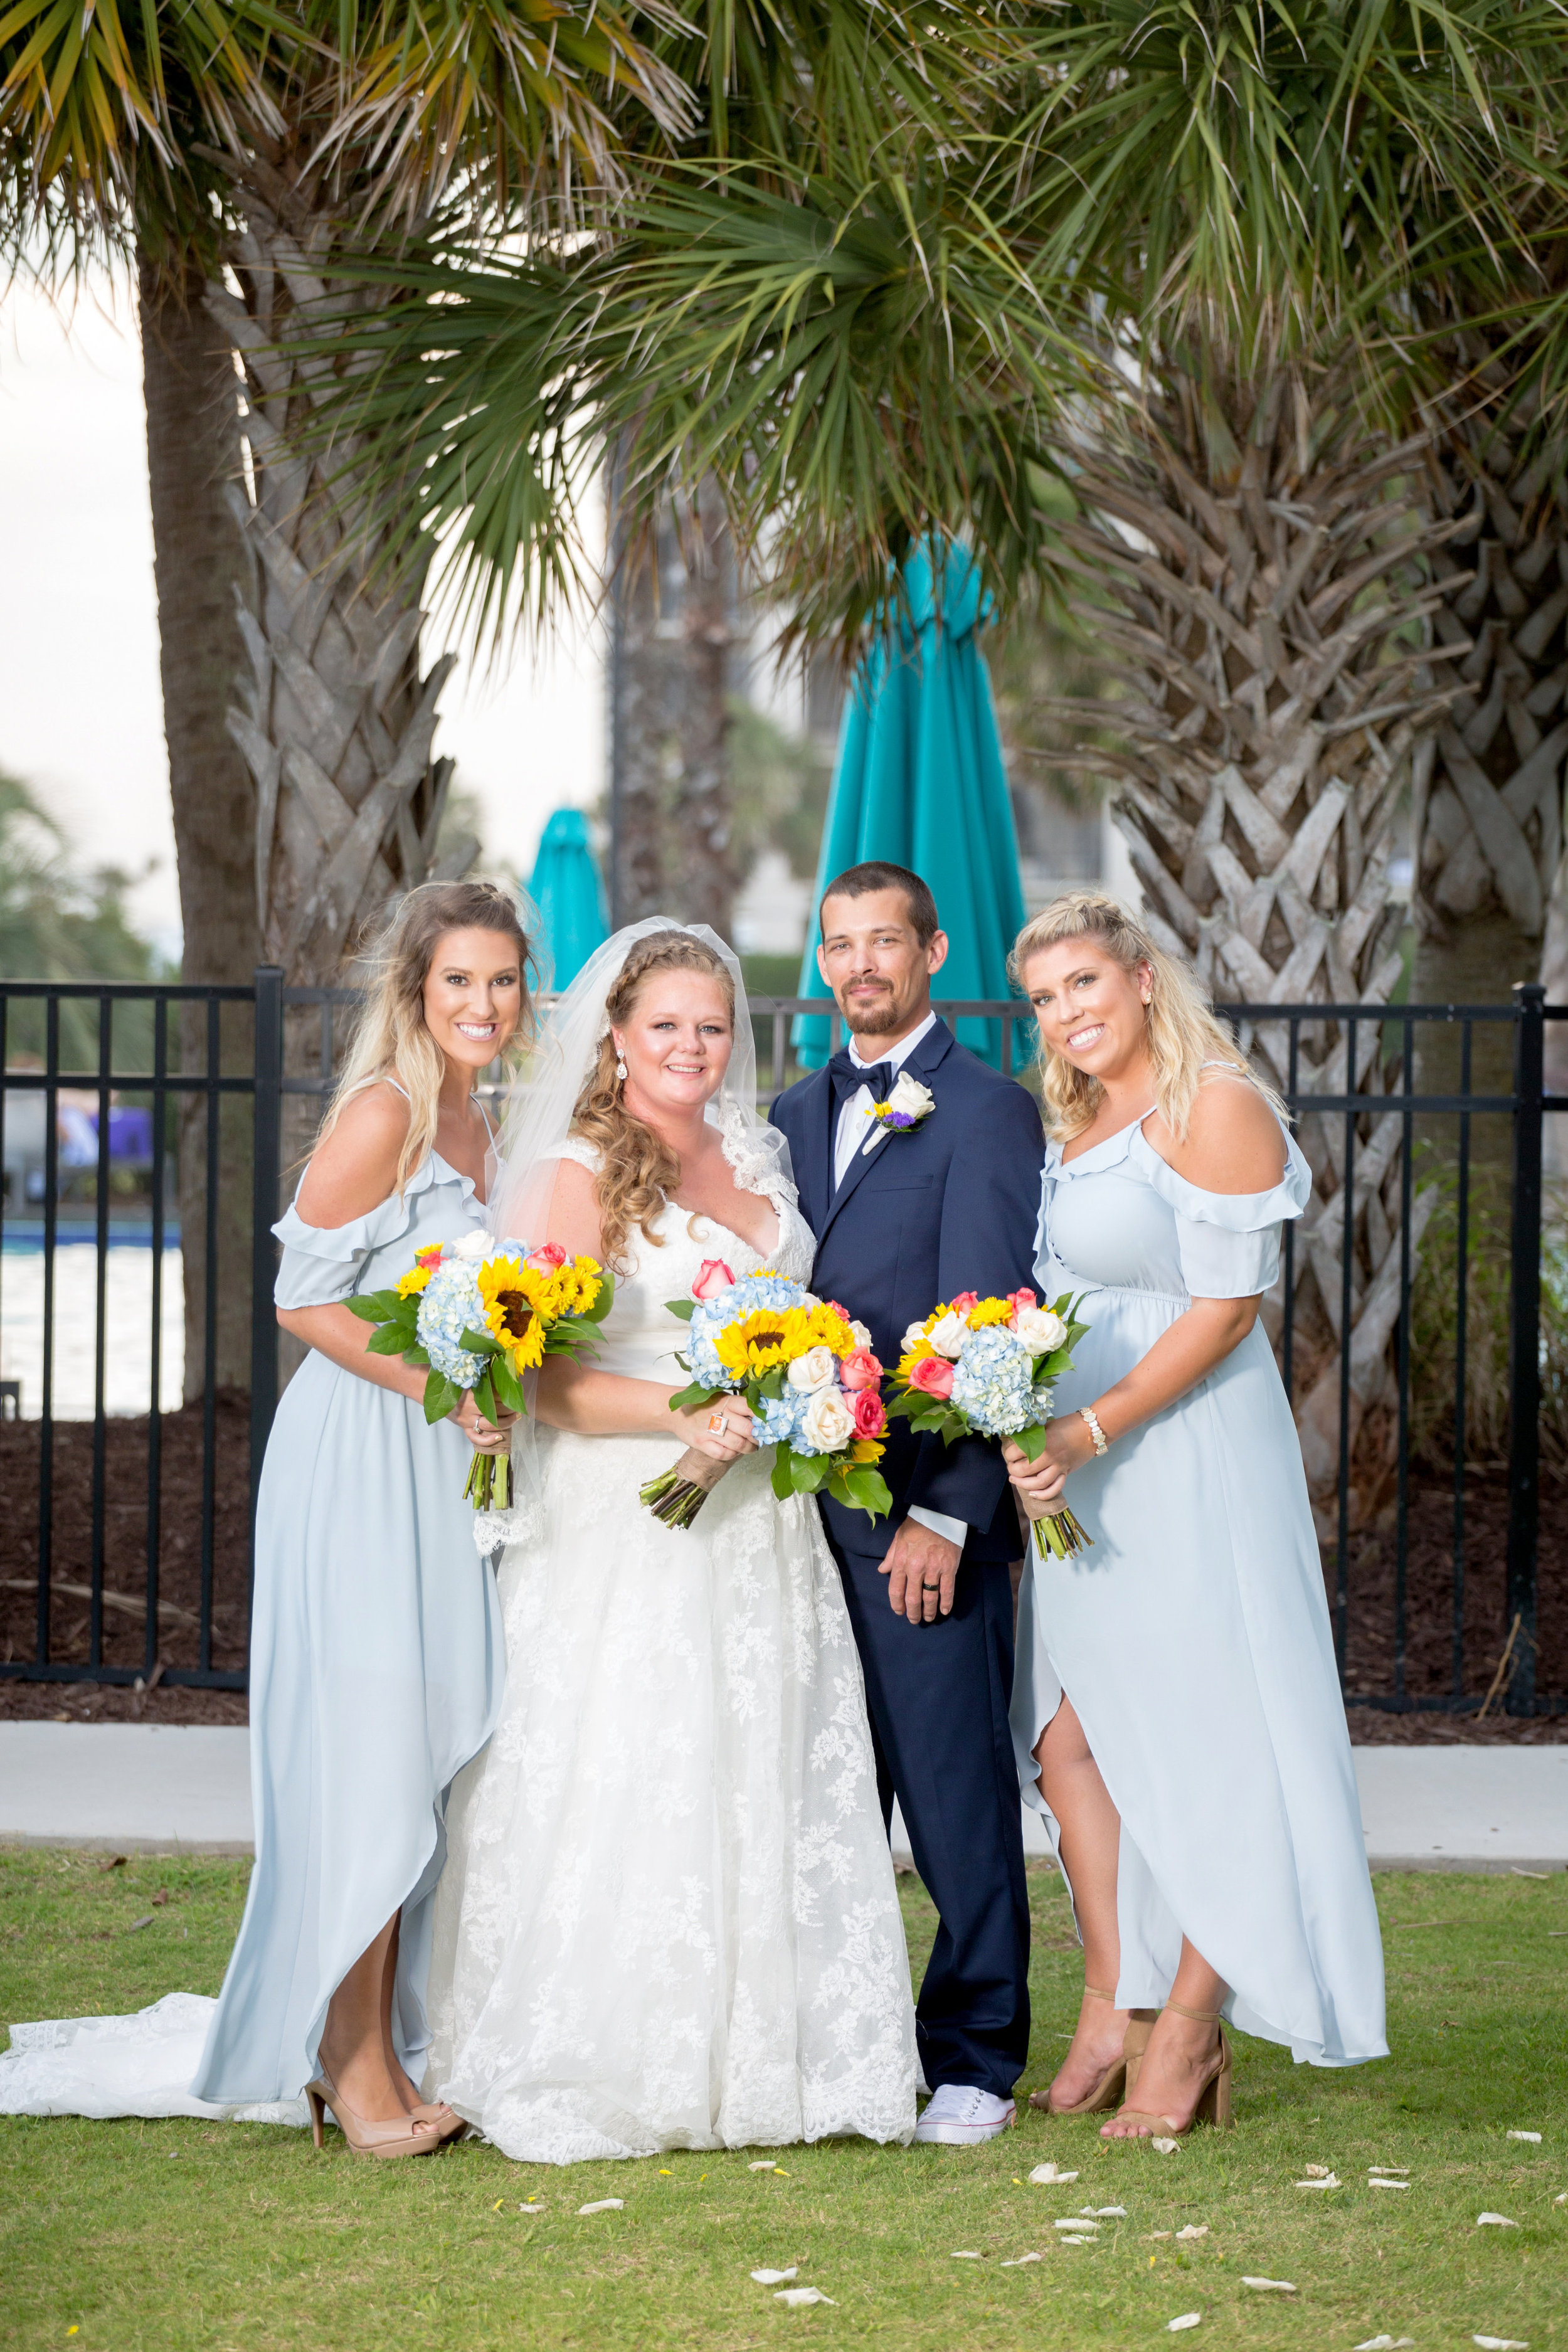 Summer Destination Wedding - Myrtle Beach21.jpg